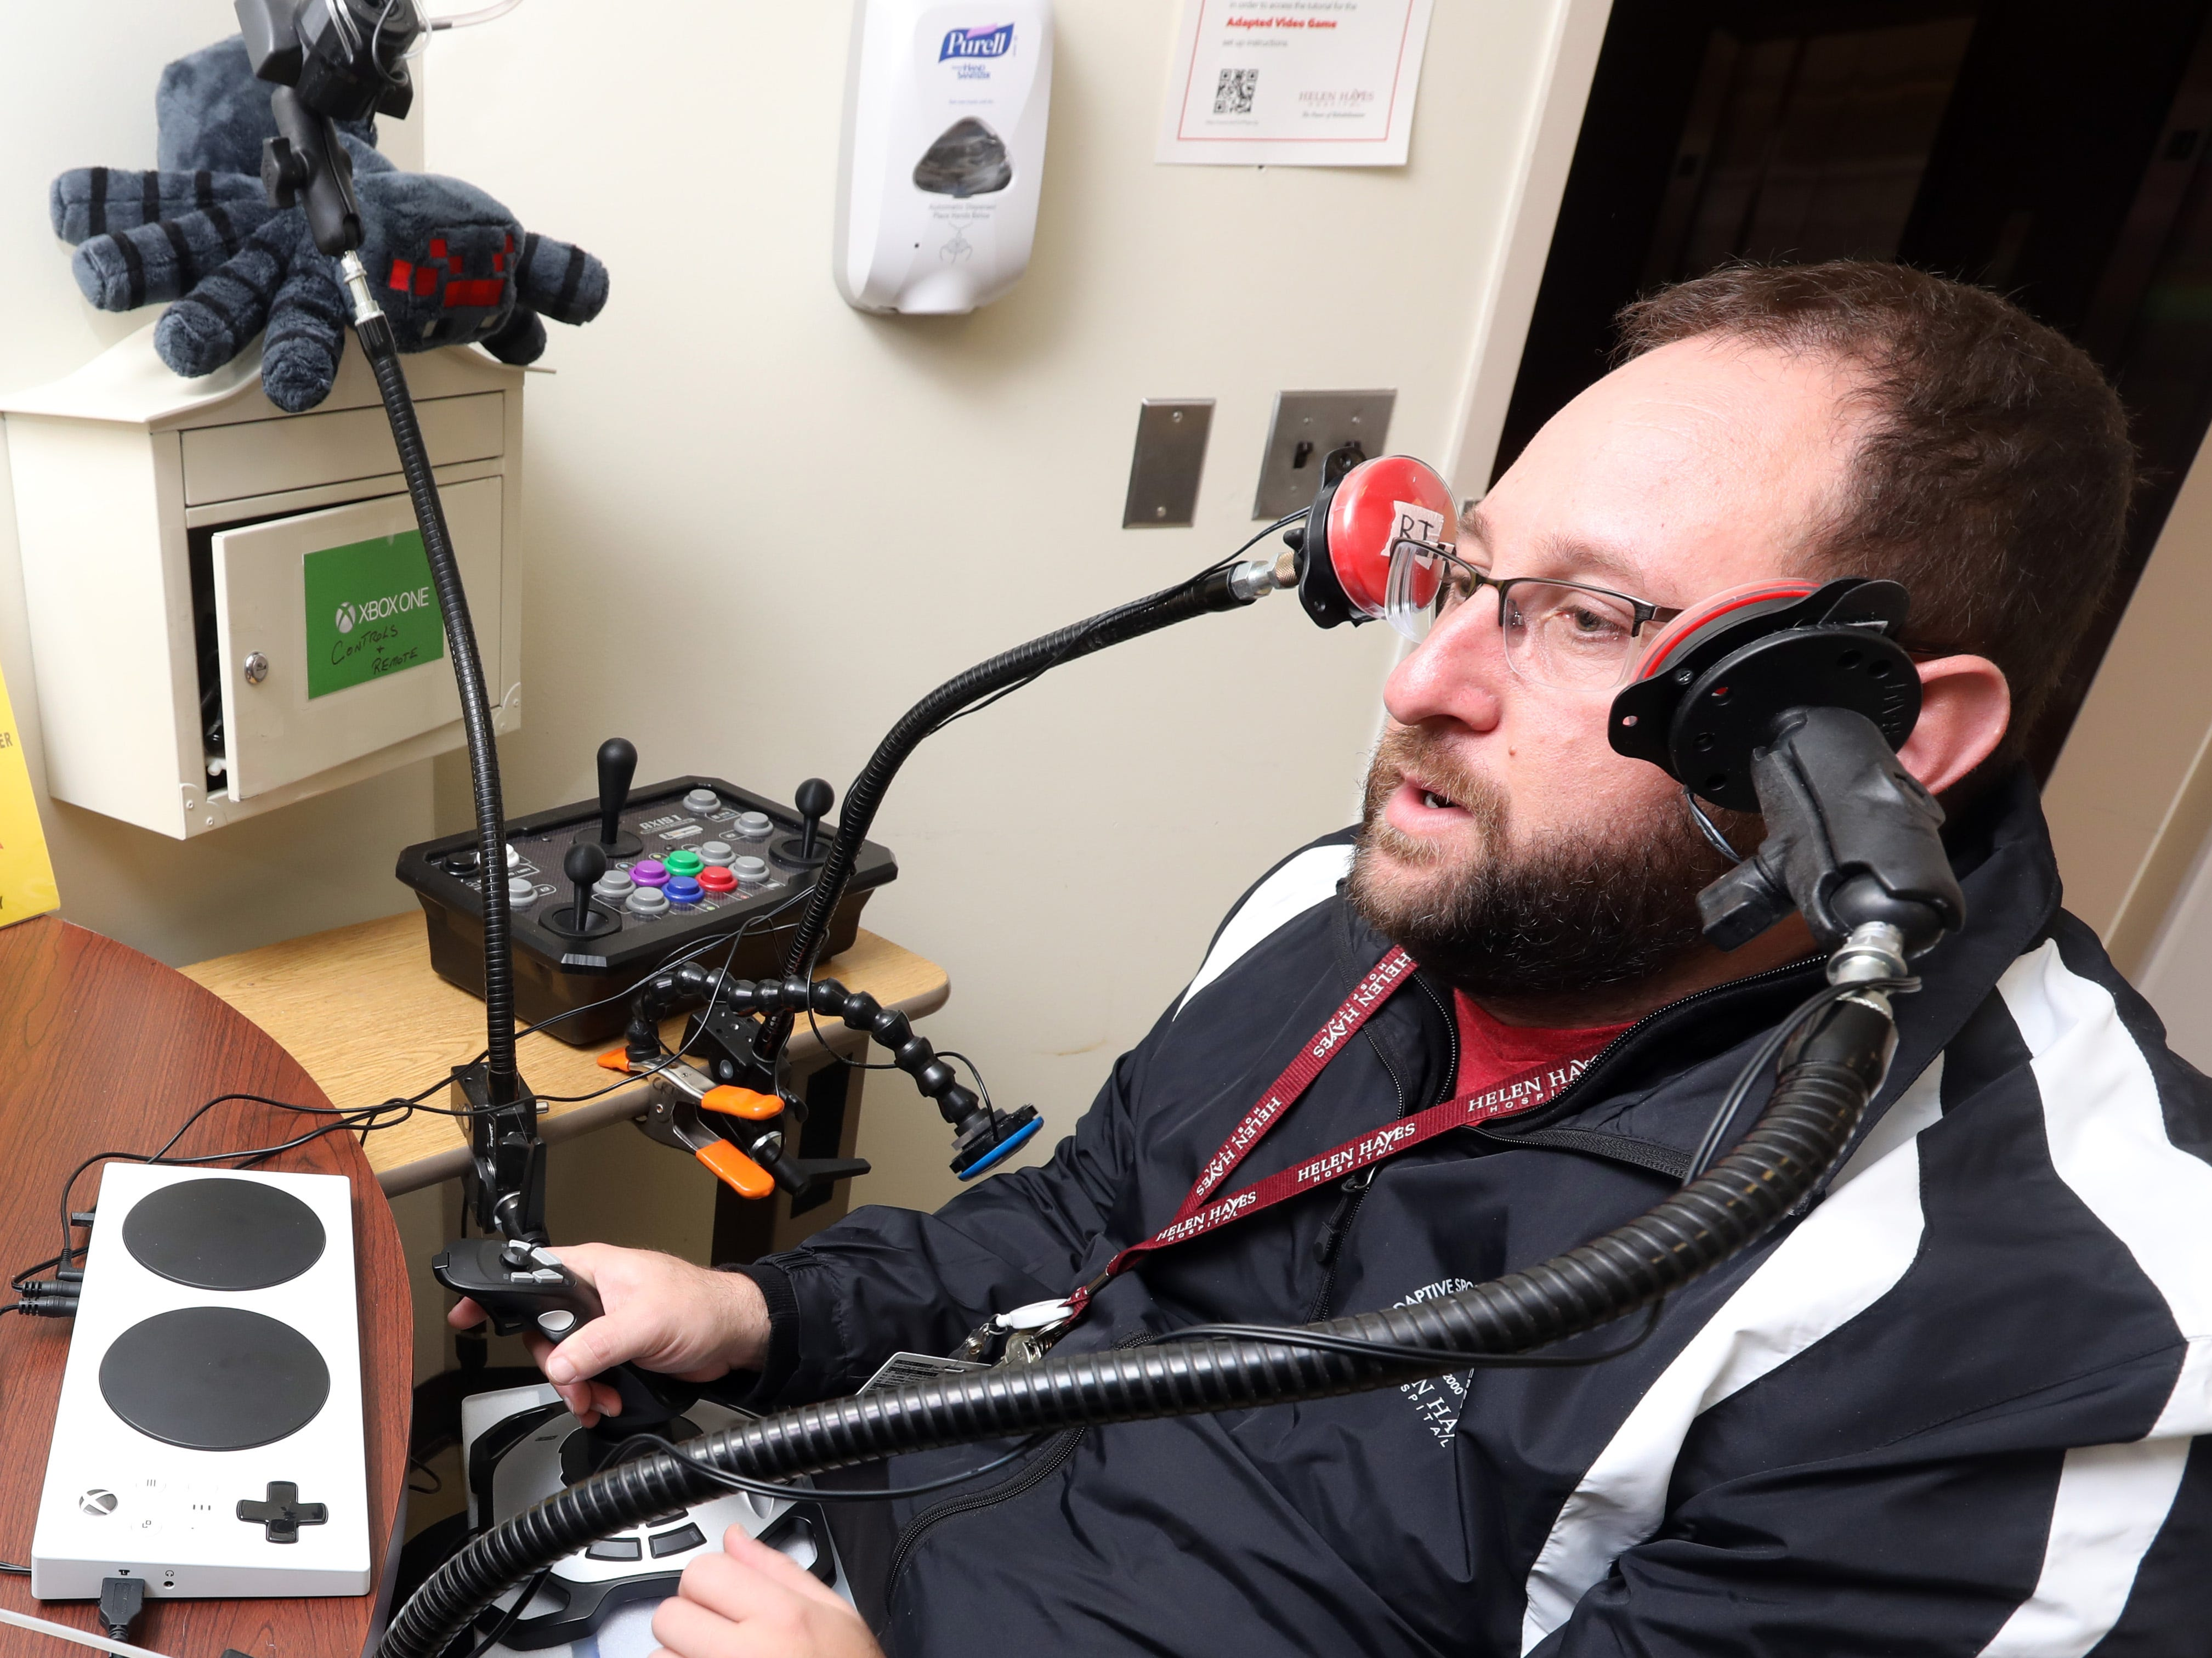 Rockland: Adaptive recreation levels playing field for people of all abilities